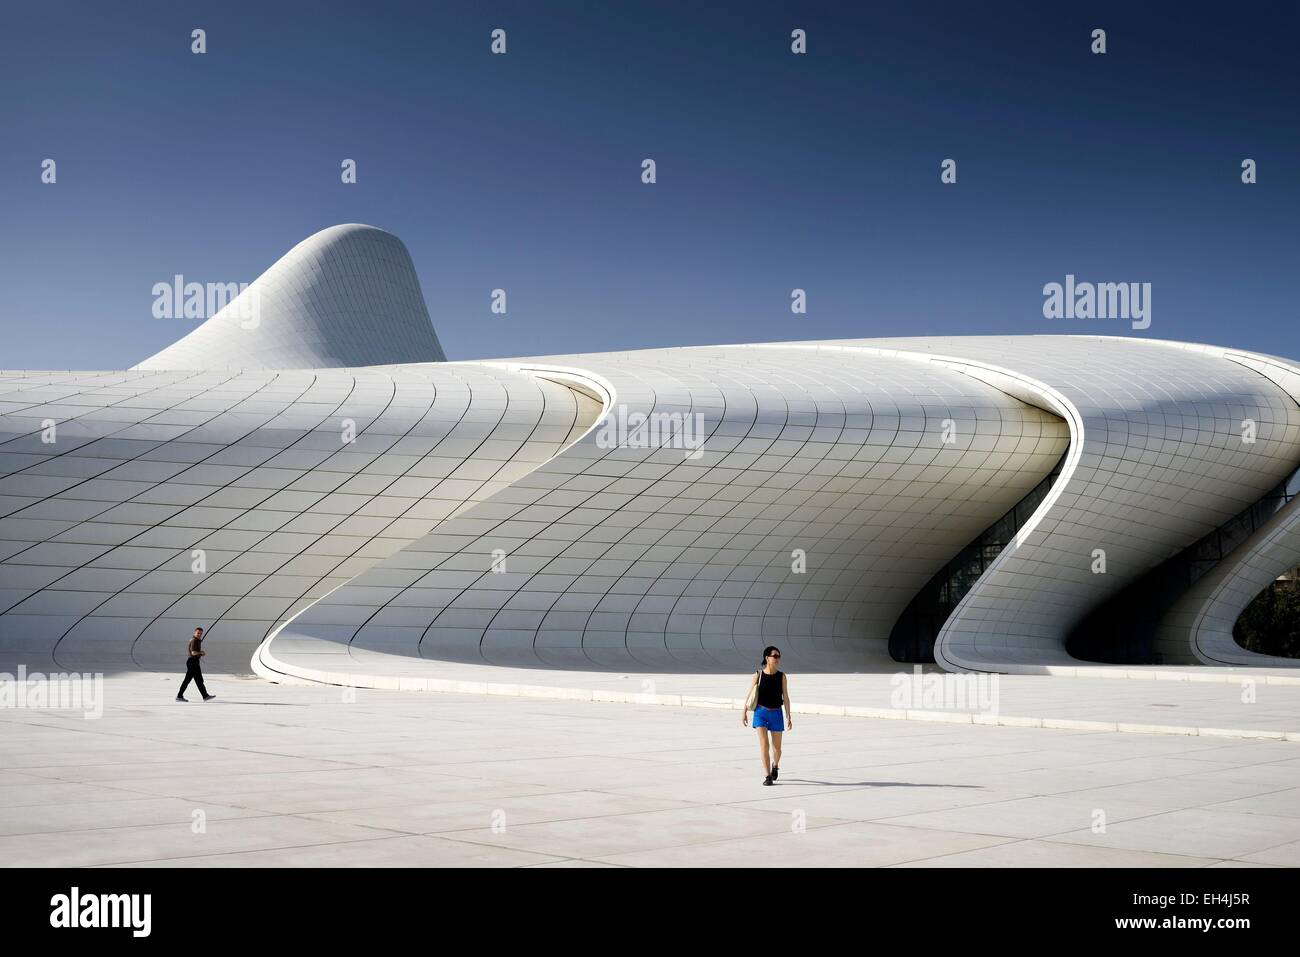 Azerbaijan, Baku, Heydar Aliyev cultural center futuristic monument designed by the architect Zaha HadidEmirats - Stock Image